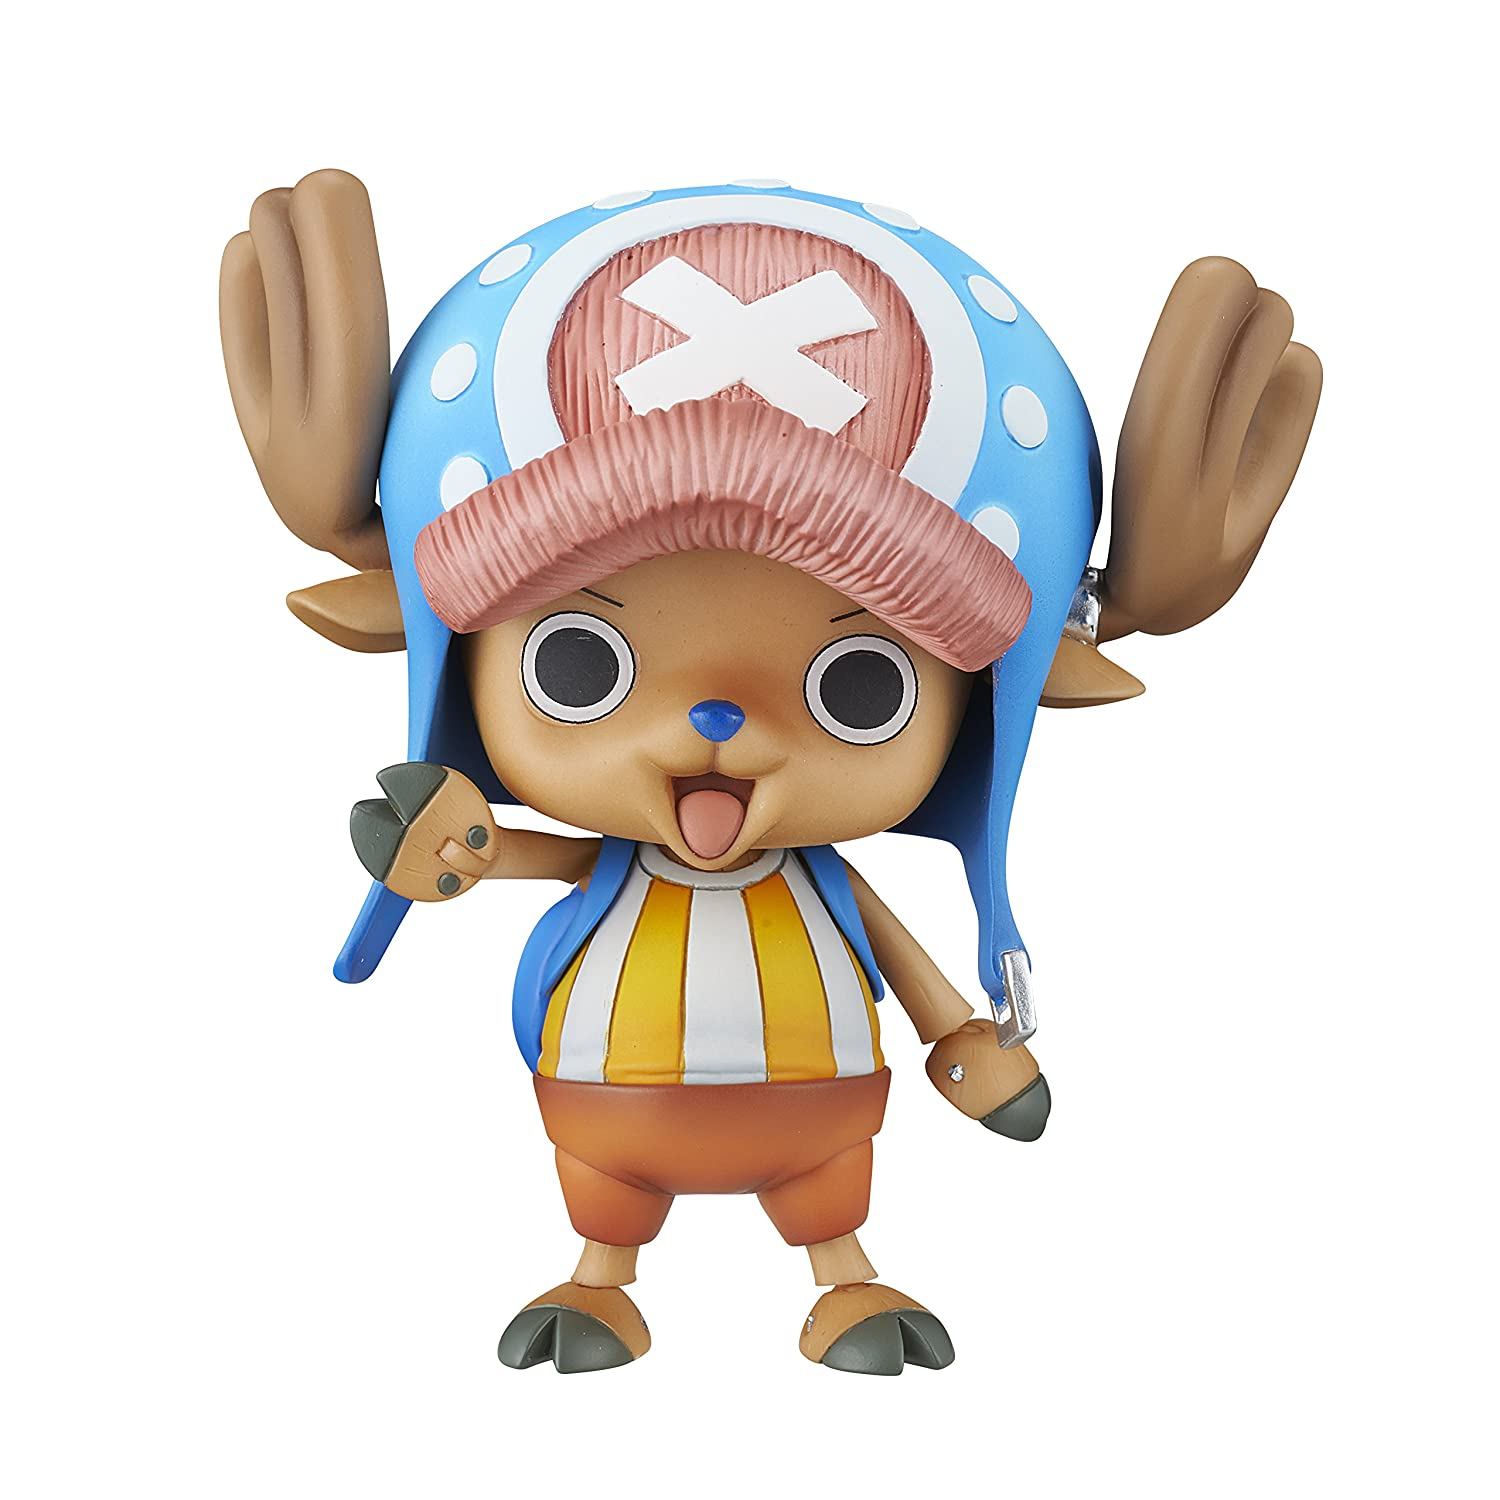 Tony Tony Chopper | One Piece Wiki | FANDOM powered by Wikia